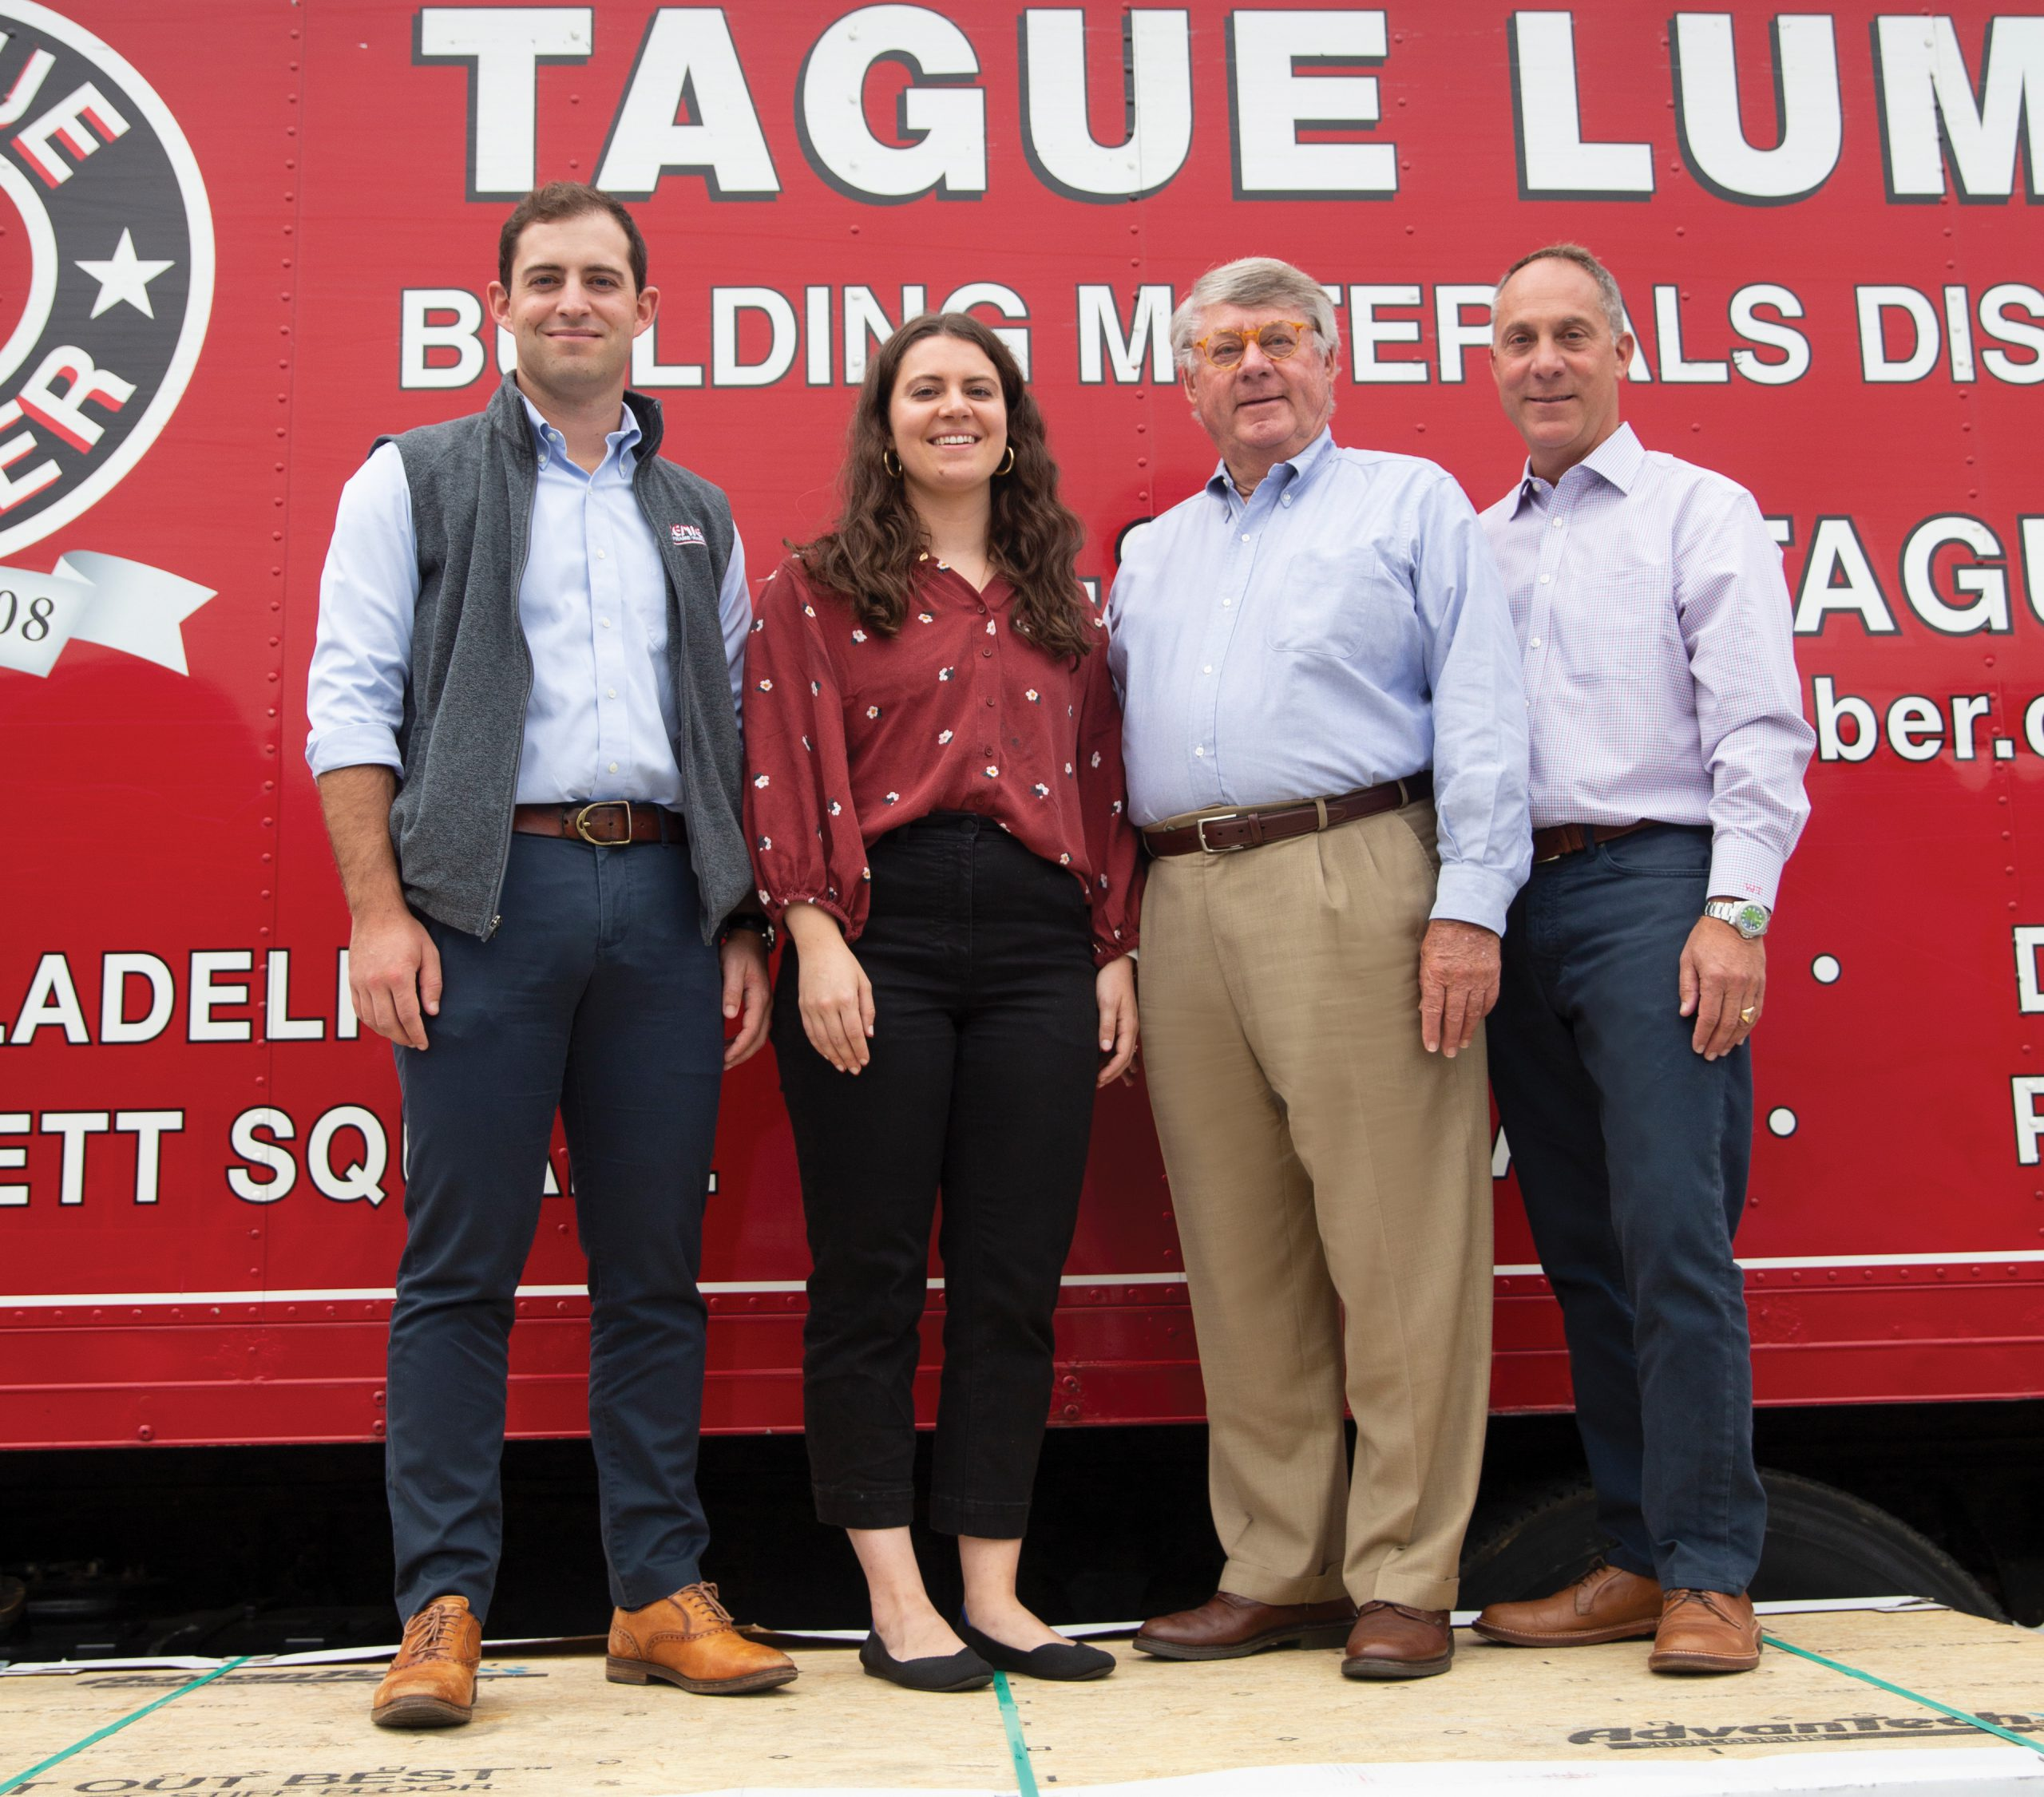 Tague Lumber: Proud Legacy of Family Ownership Flourishes